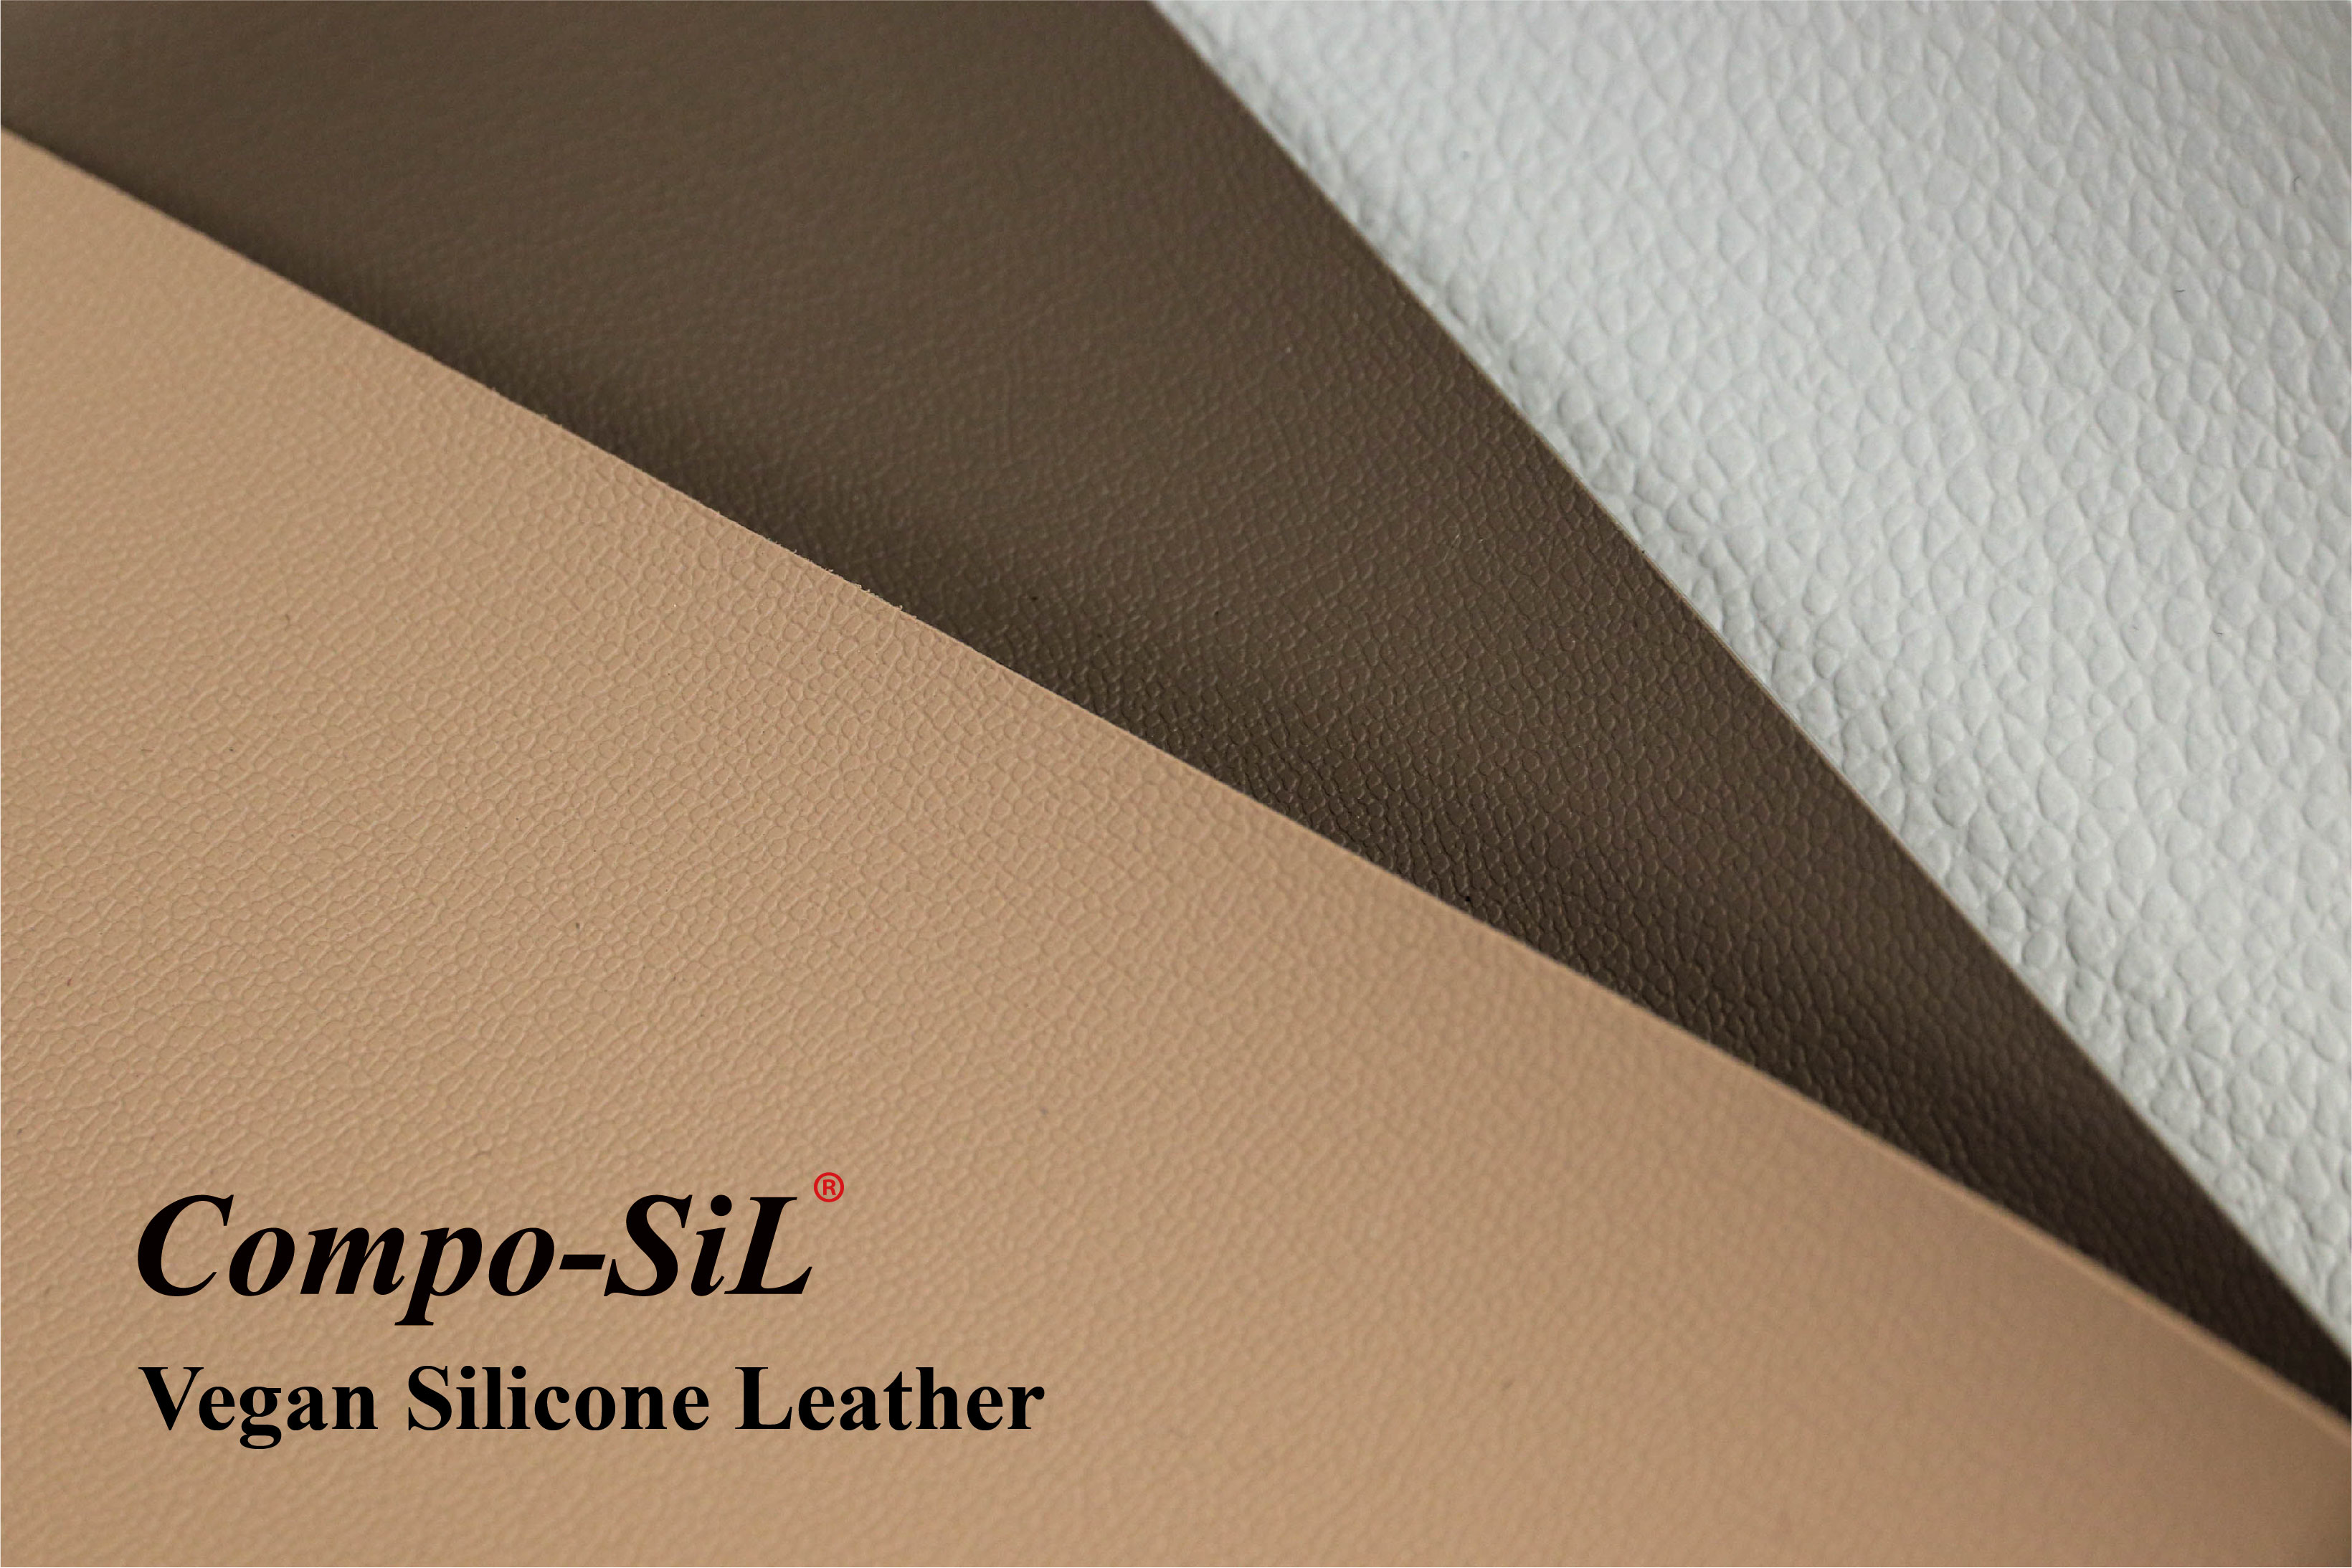 Compo-SiL®, the Best Vegan Leather Fabric for Unlimited Textile and Product Design Freedom